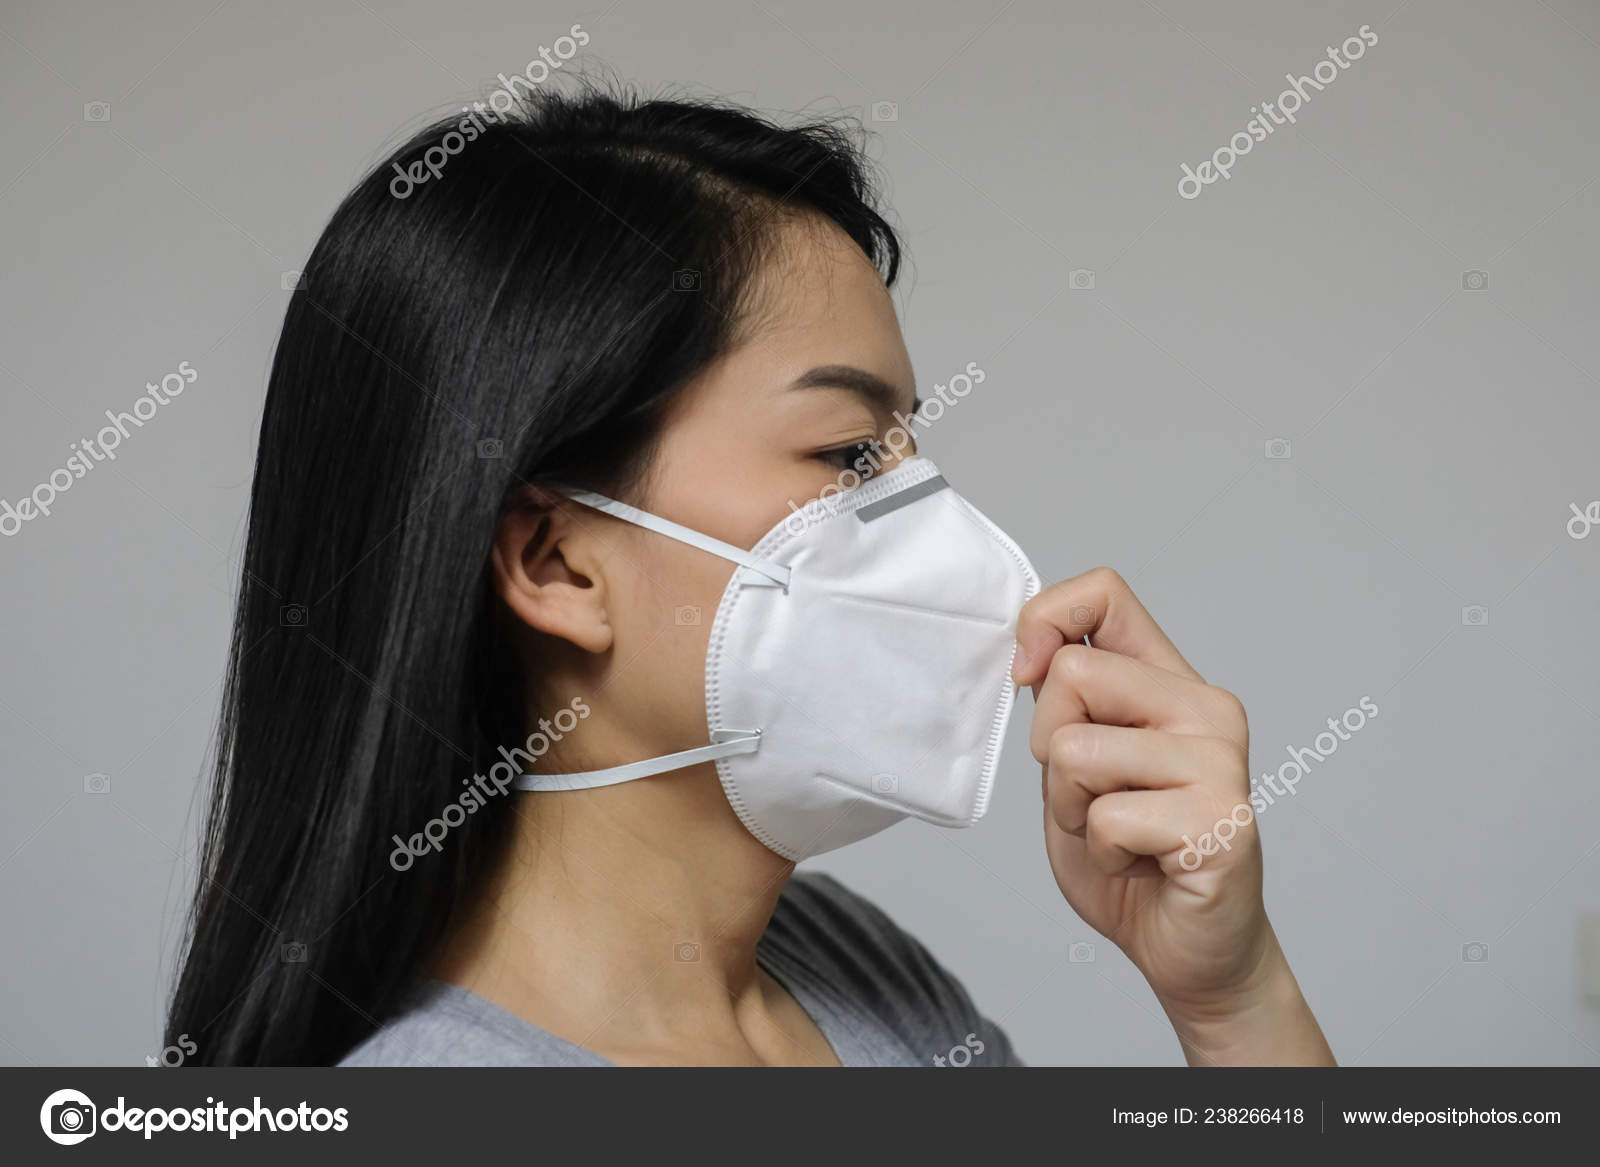 Mask Woman Pollution Have N95 City Face Wearing Air Because